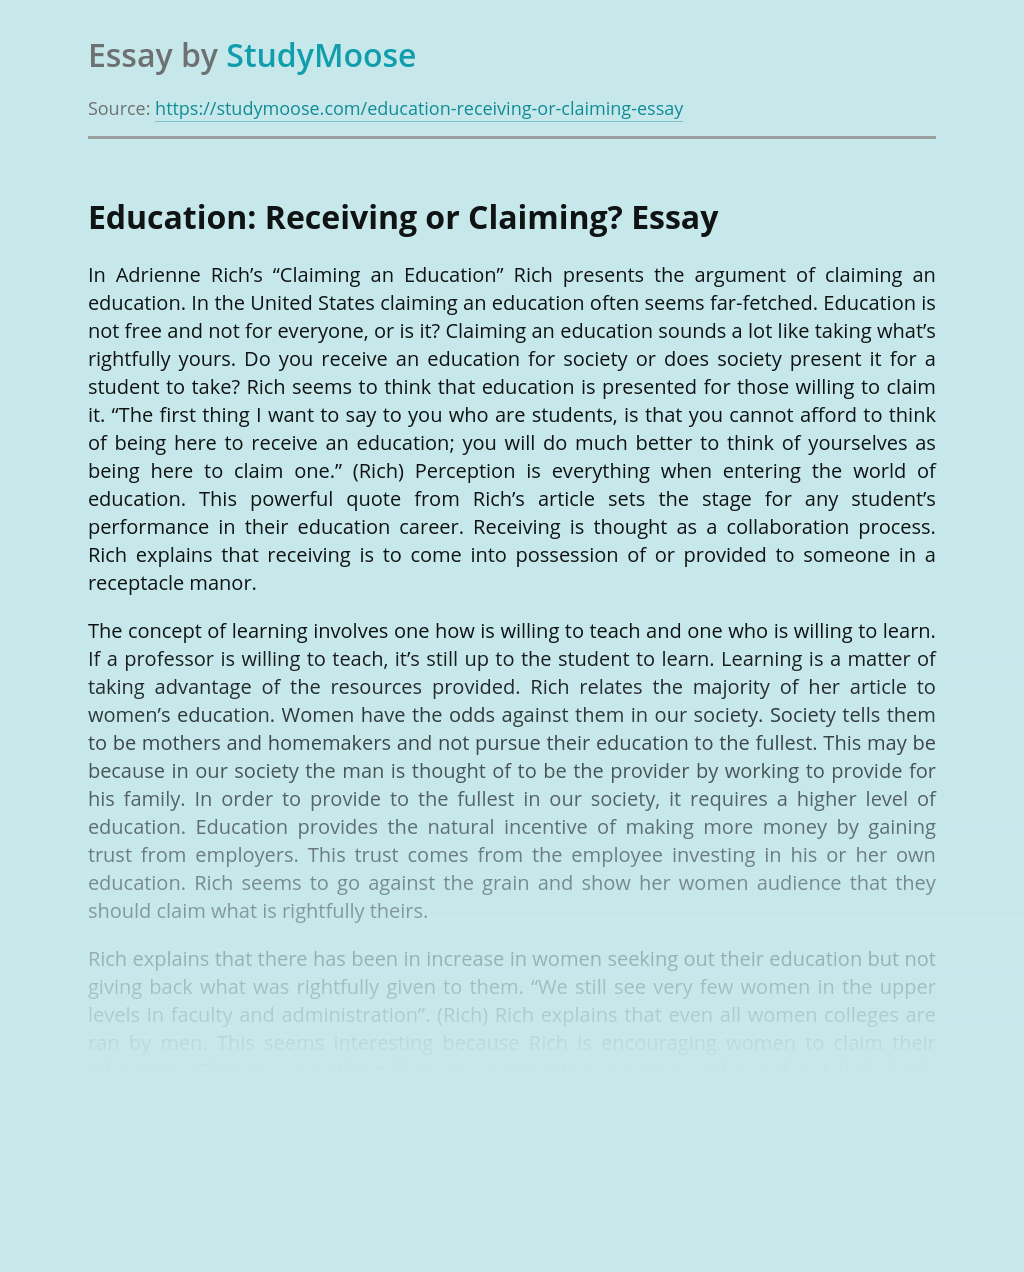 Education: Receiving or Claiming?